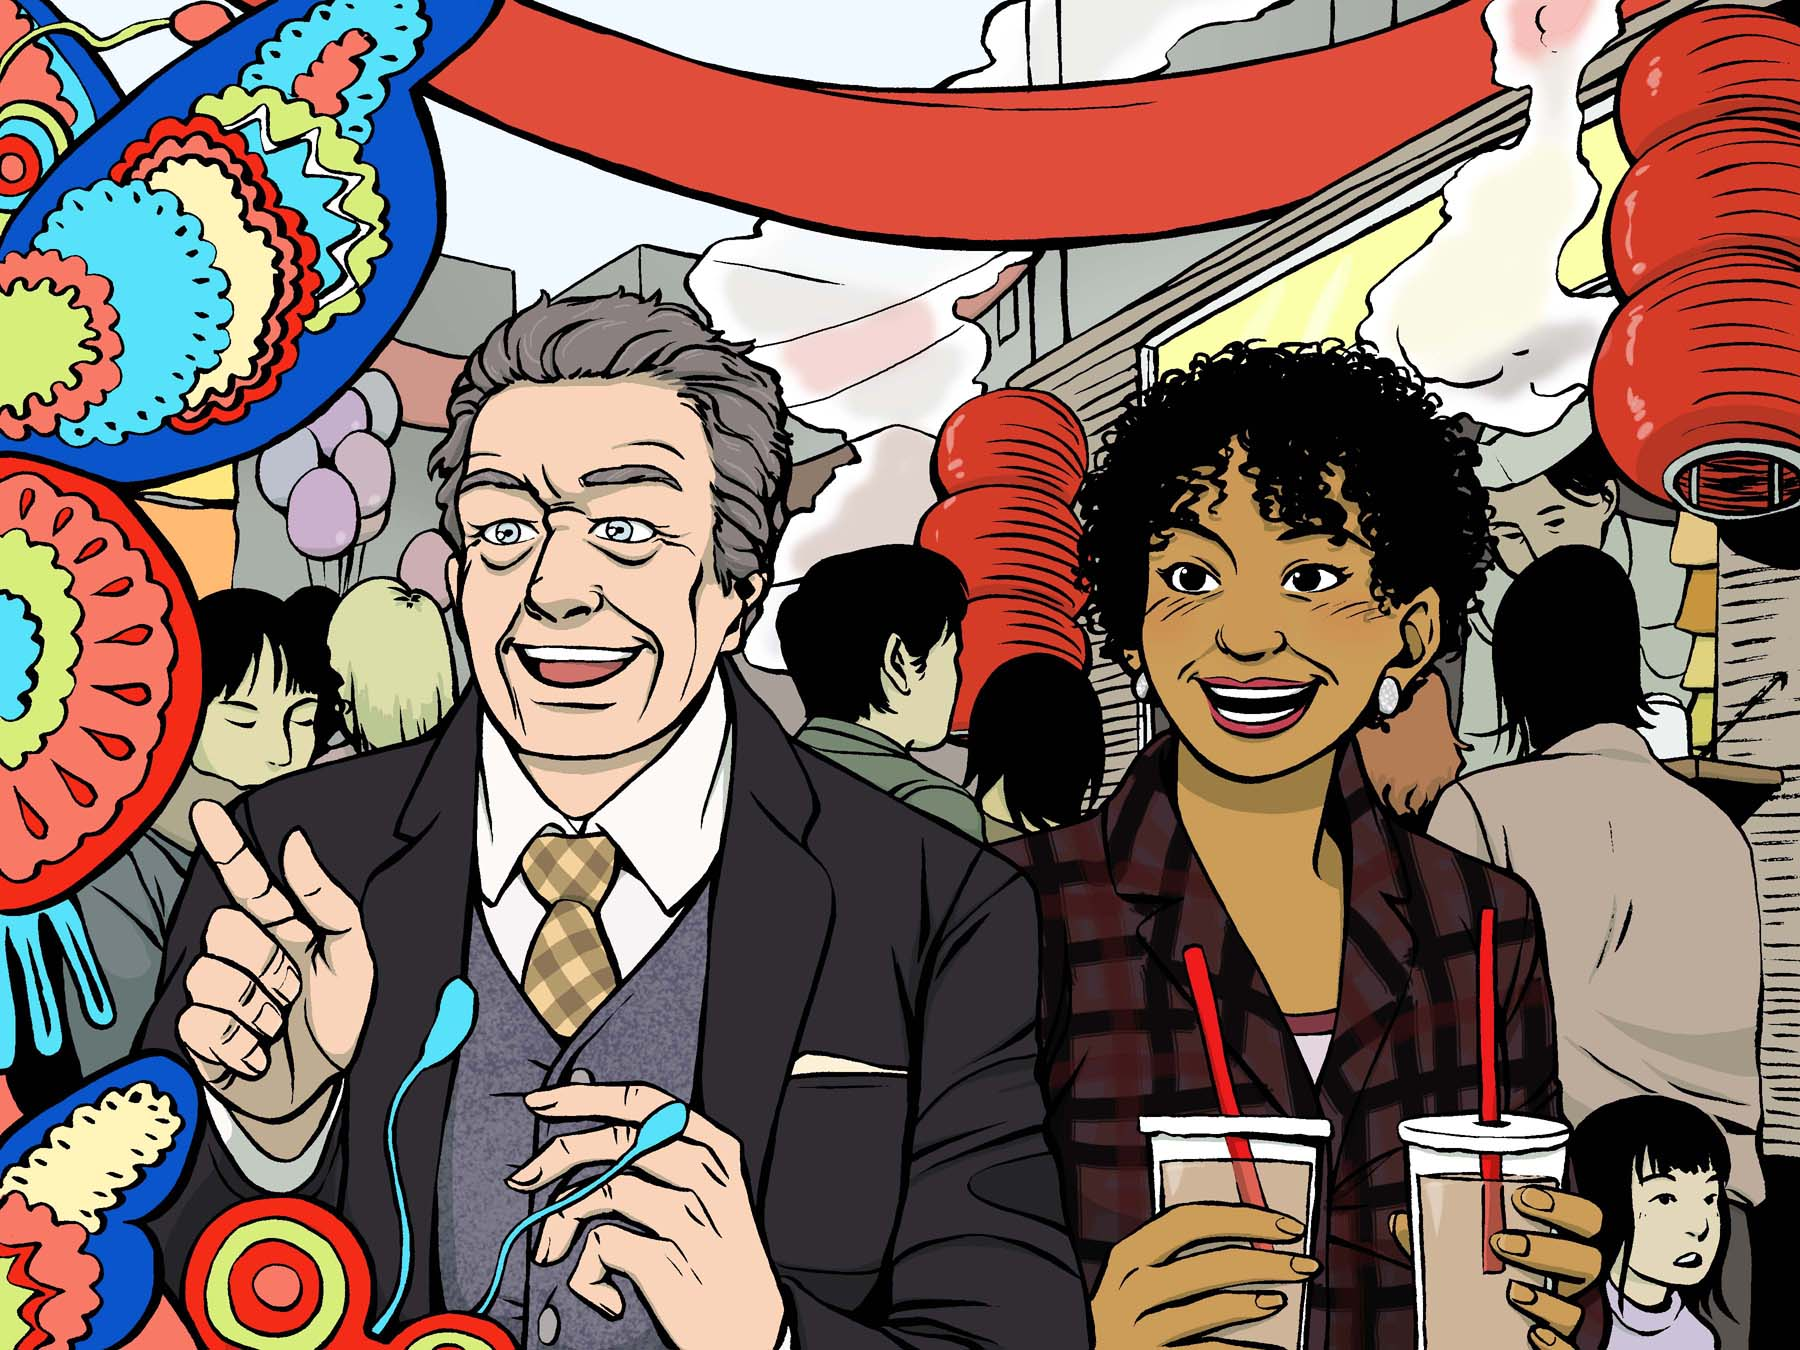 Walter and Astrid in Chinatown by Tallychyck